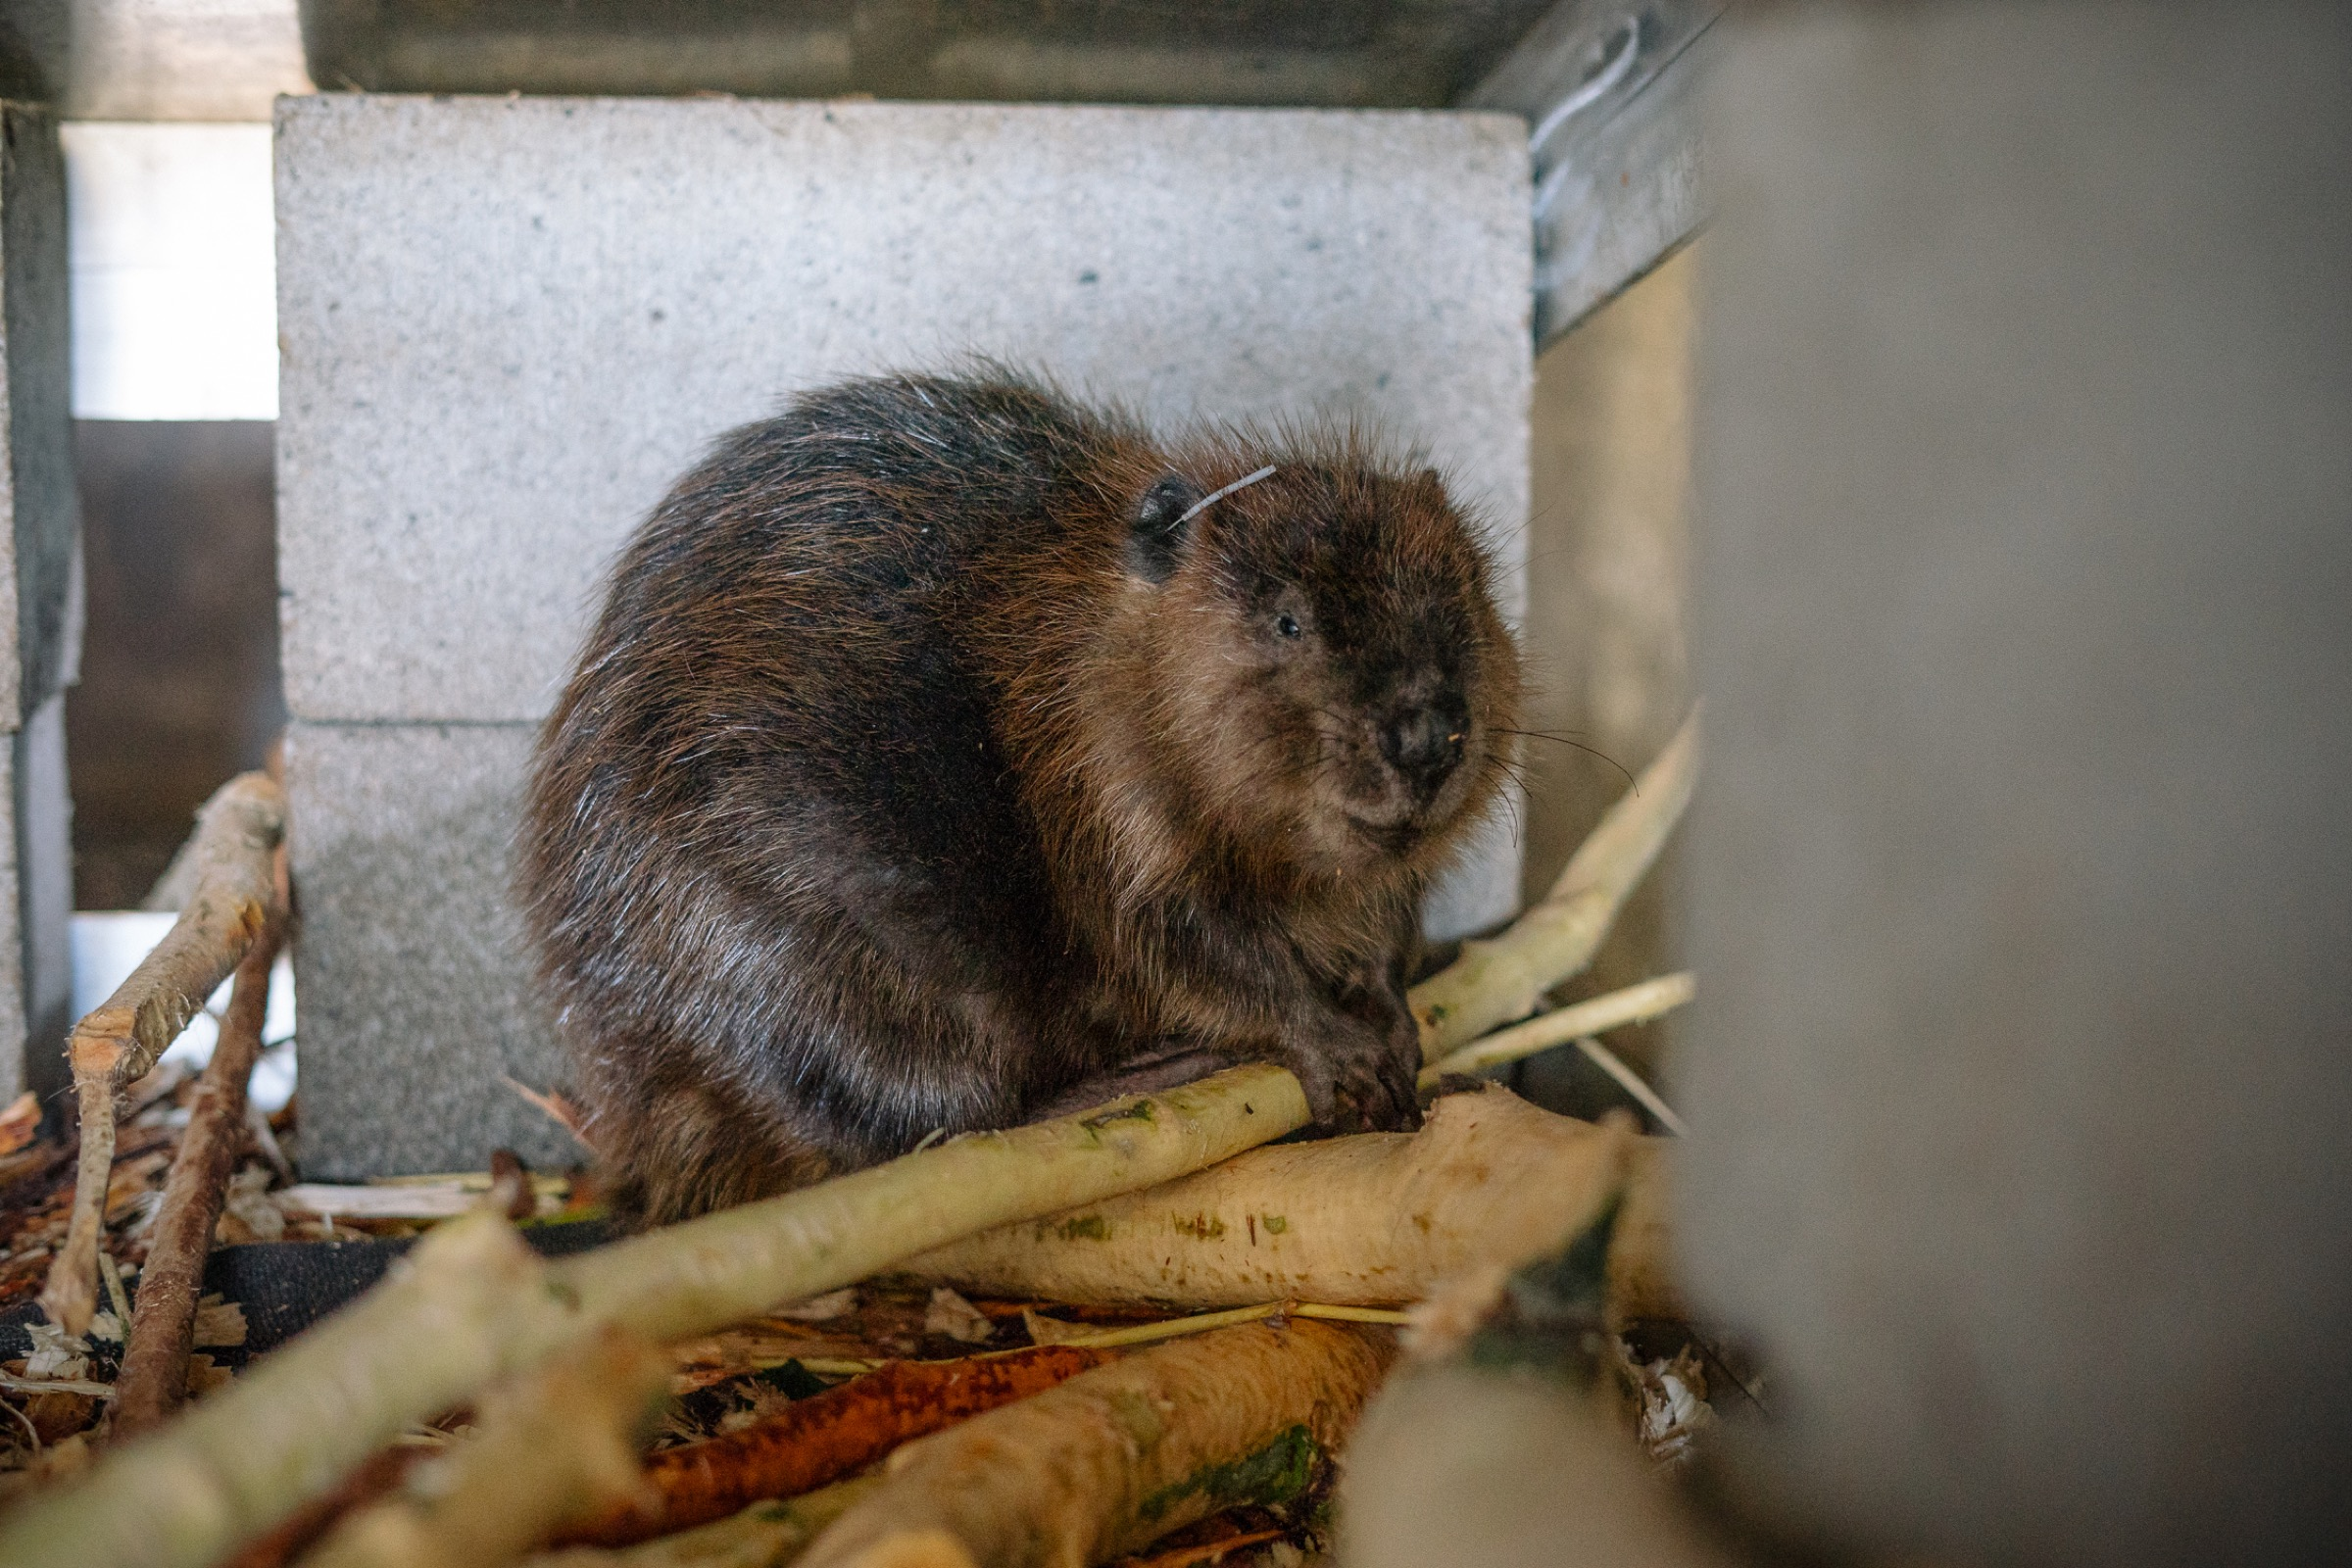 A beaver makes its temporary home at the Tulalip fish hatchery where it will stay and either be reacquainted with family members or introduced to a new mate before being released back into the wild.